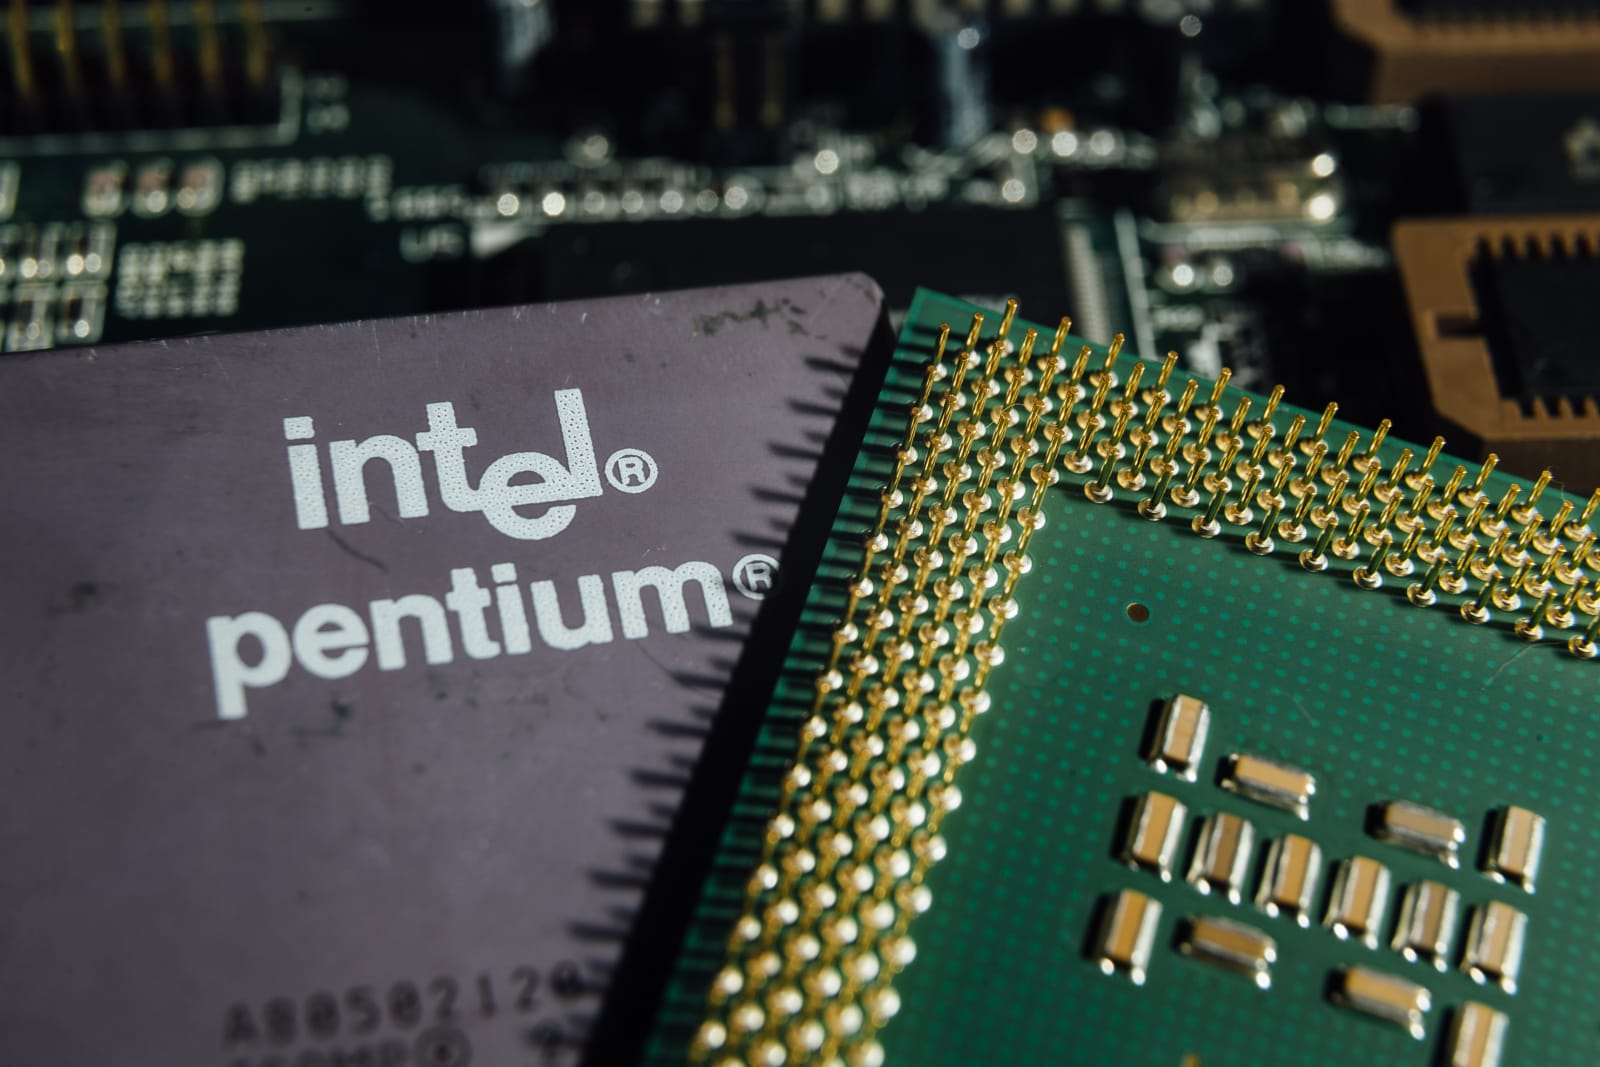 intel pentium flaw Read here for all the latest information—vulnerabilities, patches, fixes, and more—on the recently discovered major security flaws in cpus from intel, amd, and arm.